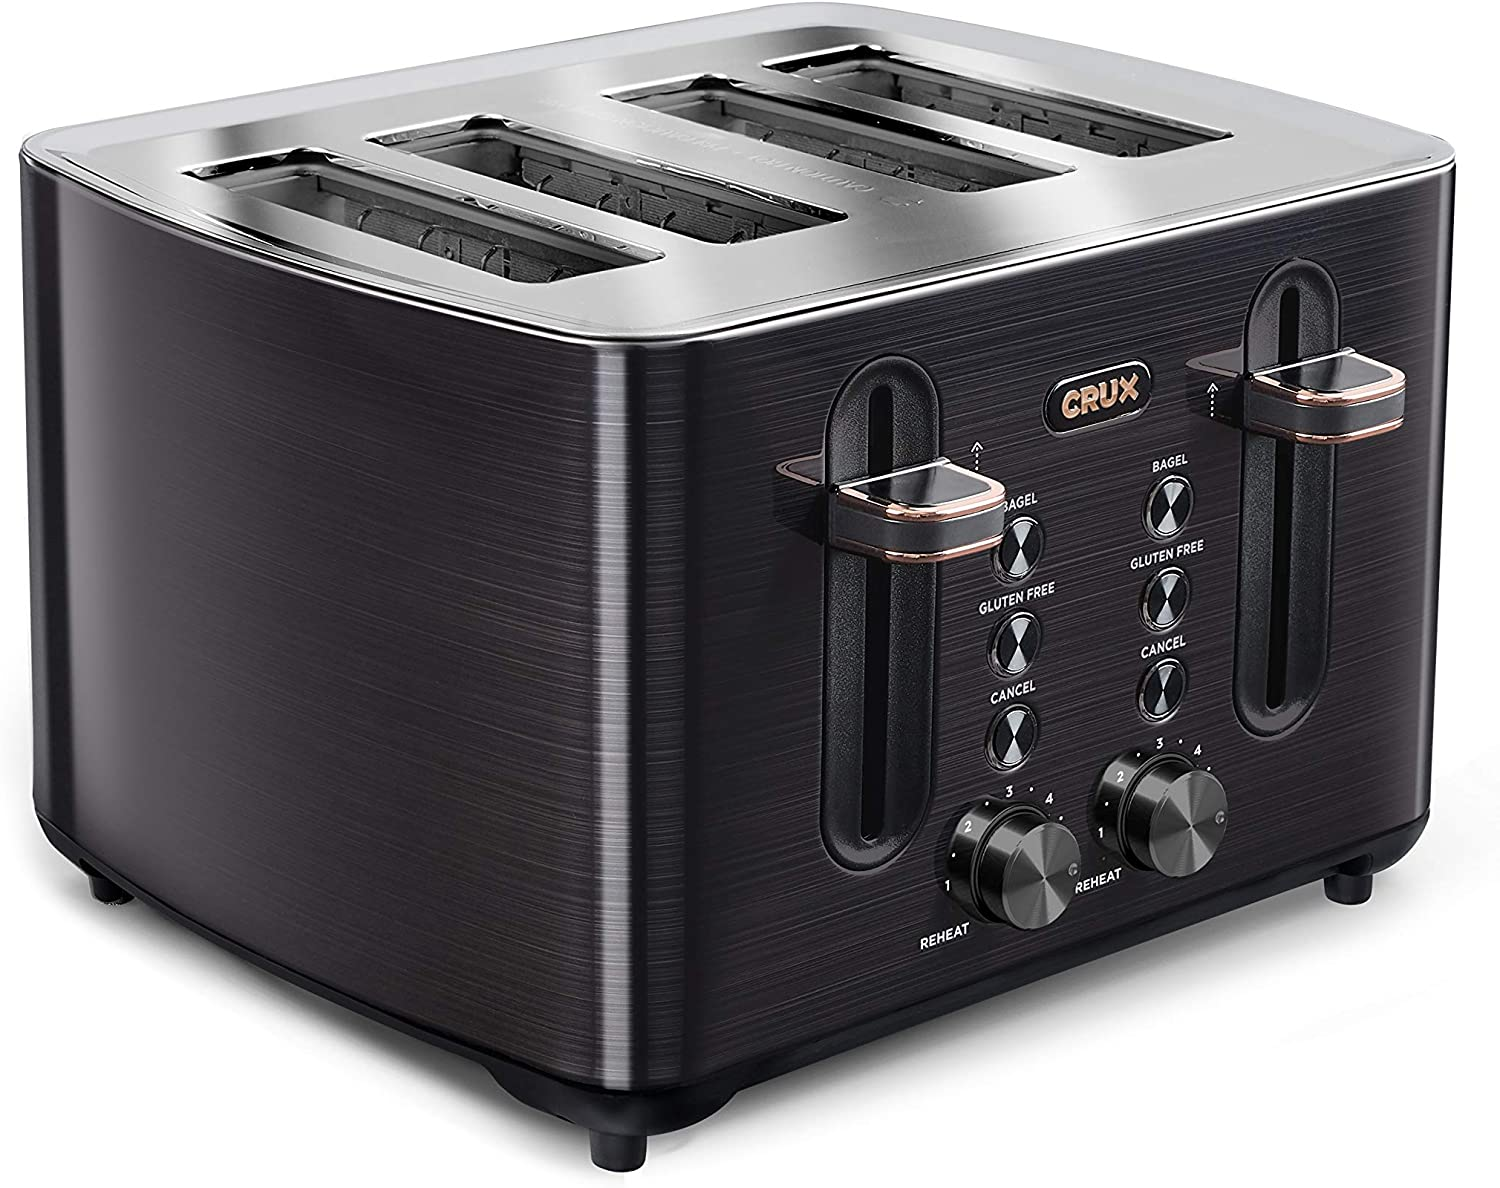 CRUX 4-Slice Toaster with Extra Wide Slots & 6 Setting Shade Control, Black Stainless Steel